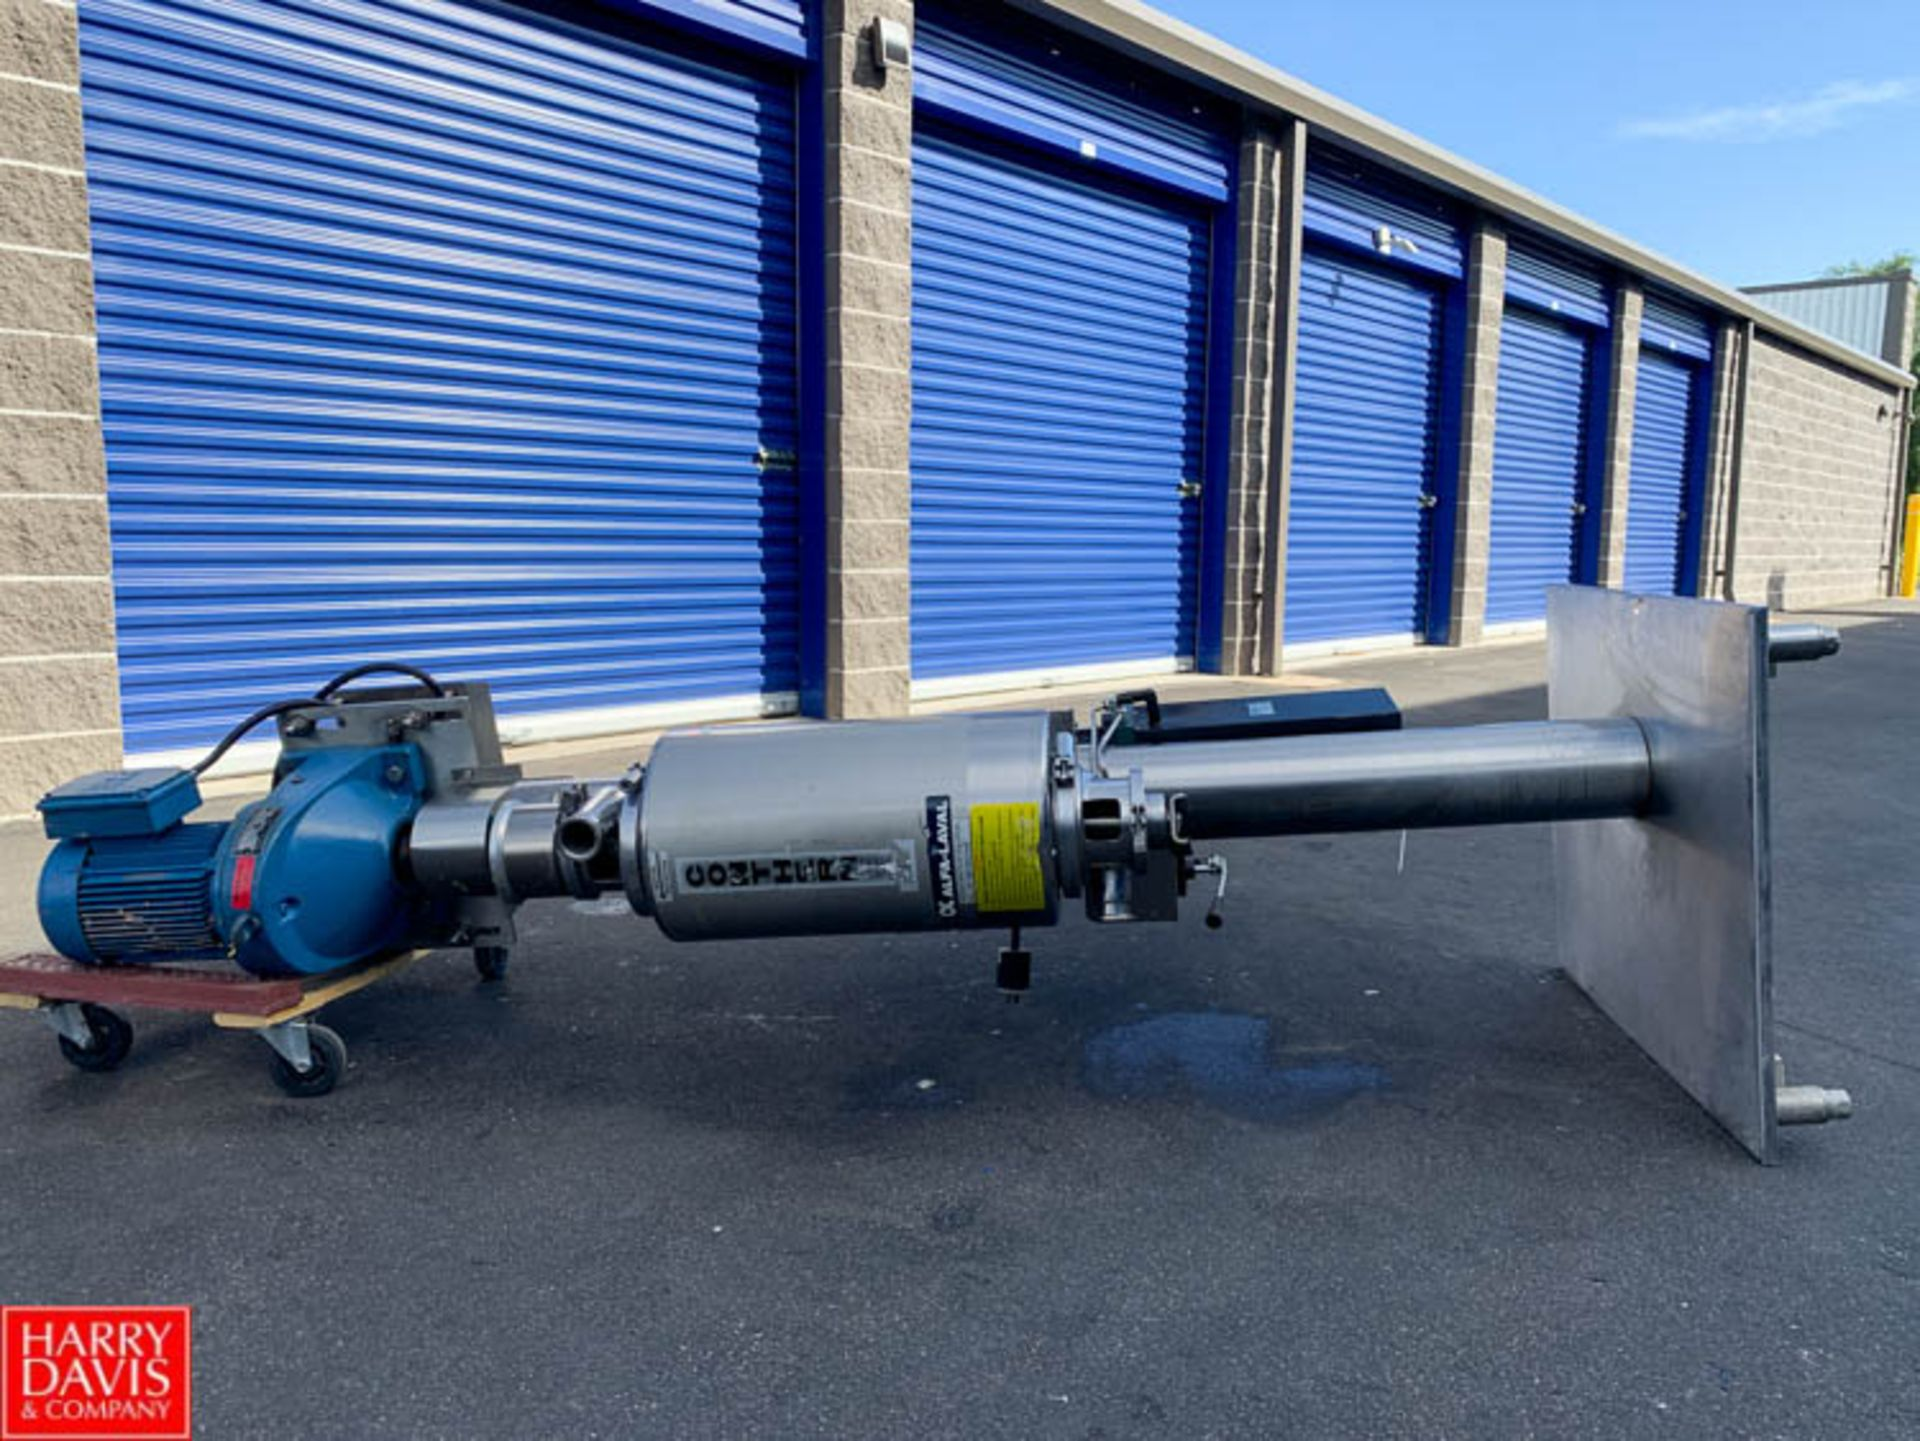 Lot 3 - Alfa Laval Scrape-Surface S/S Contherm Model 6 X 3 (300 PSI at 600 Degrees F), Mounted on S/S